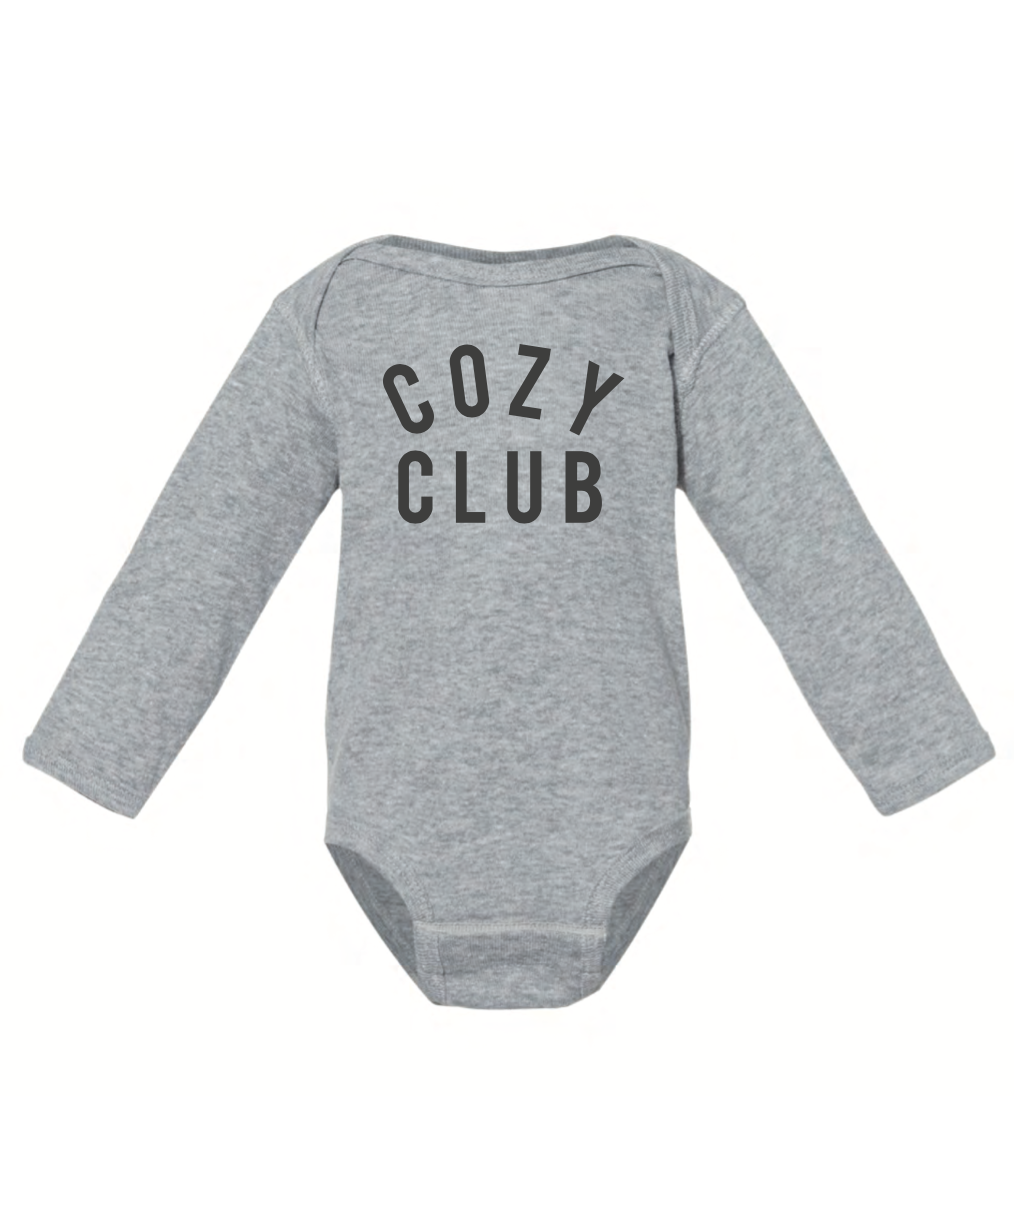 Cozy Club - Infant Long Sleeve Onesie - Grey